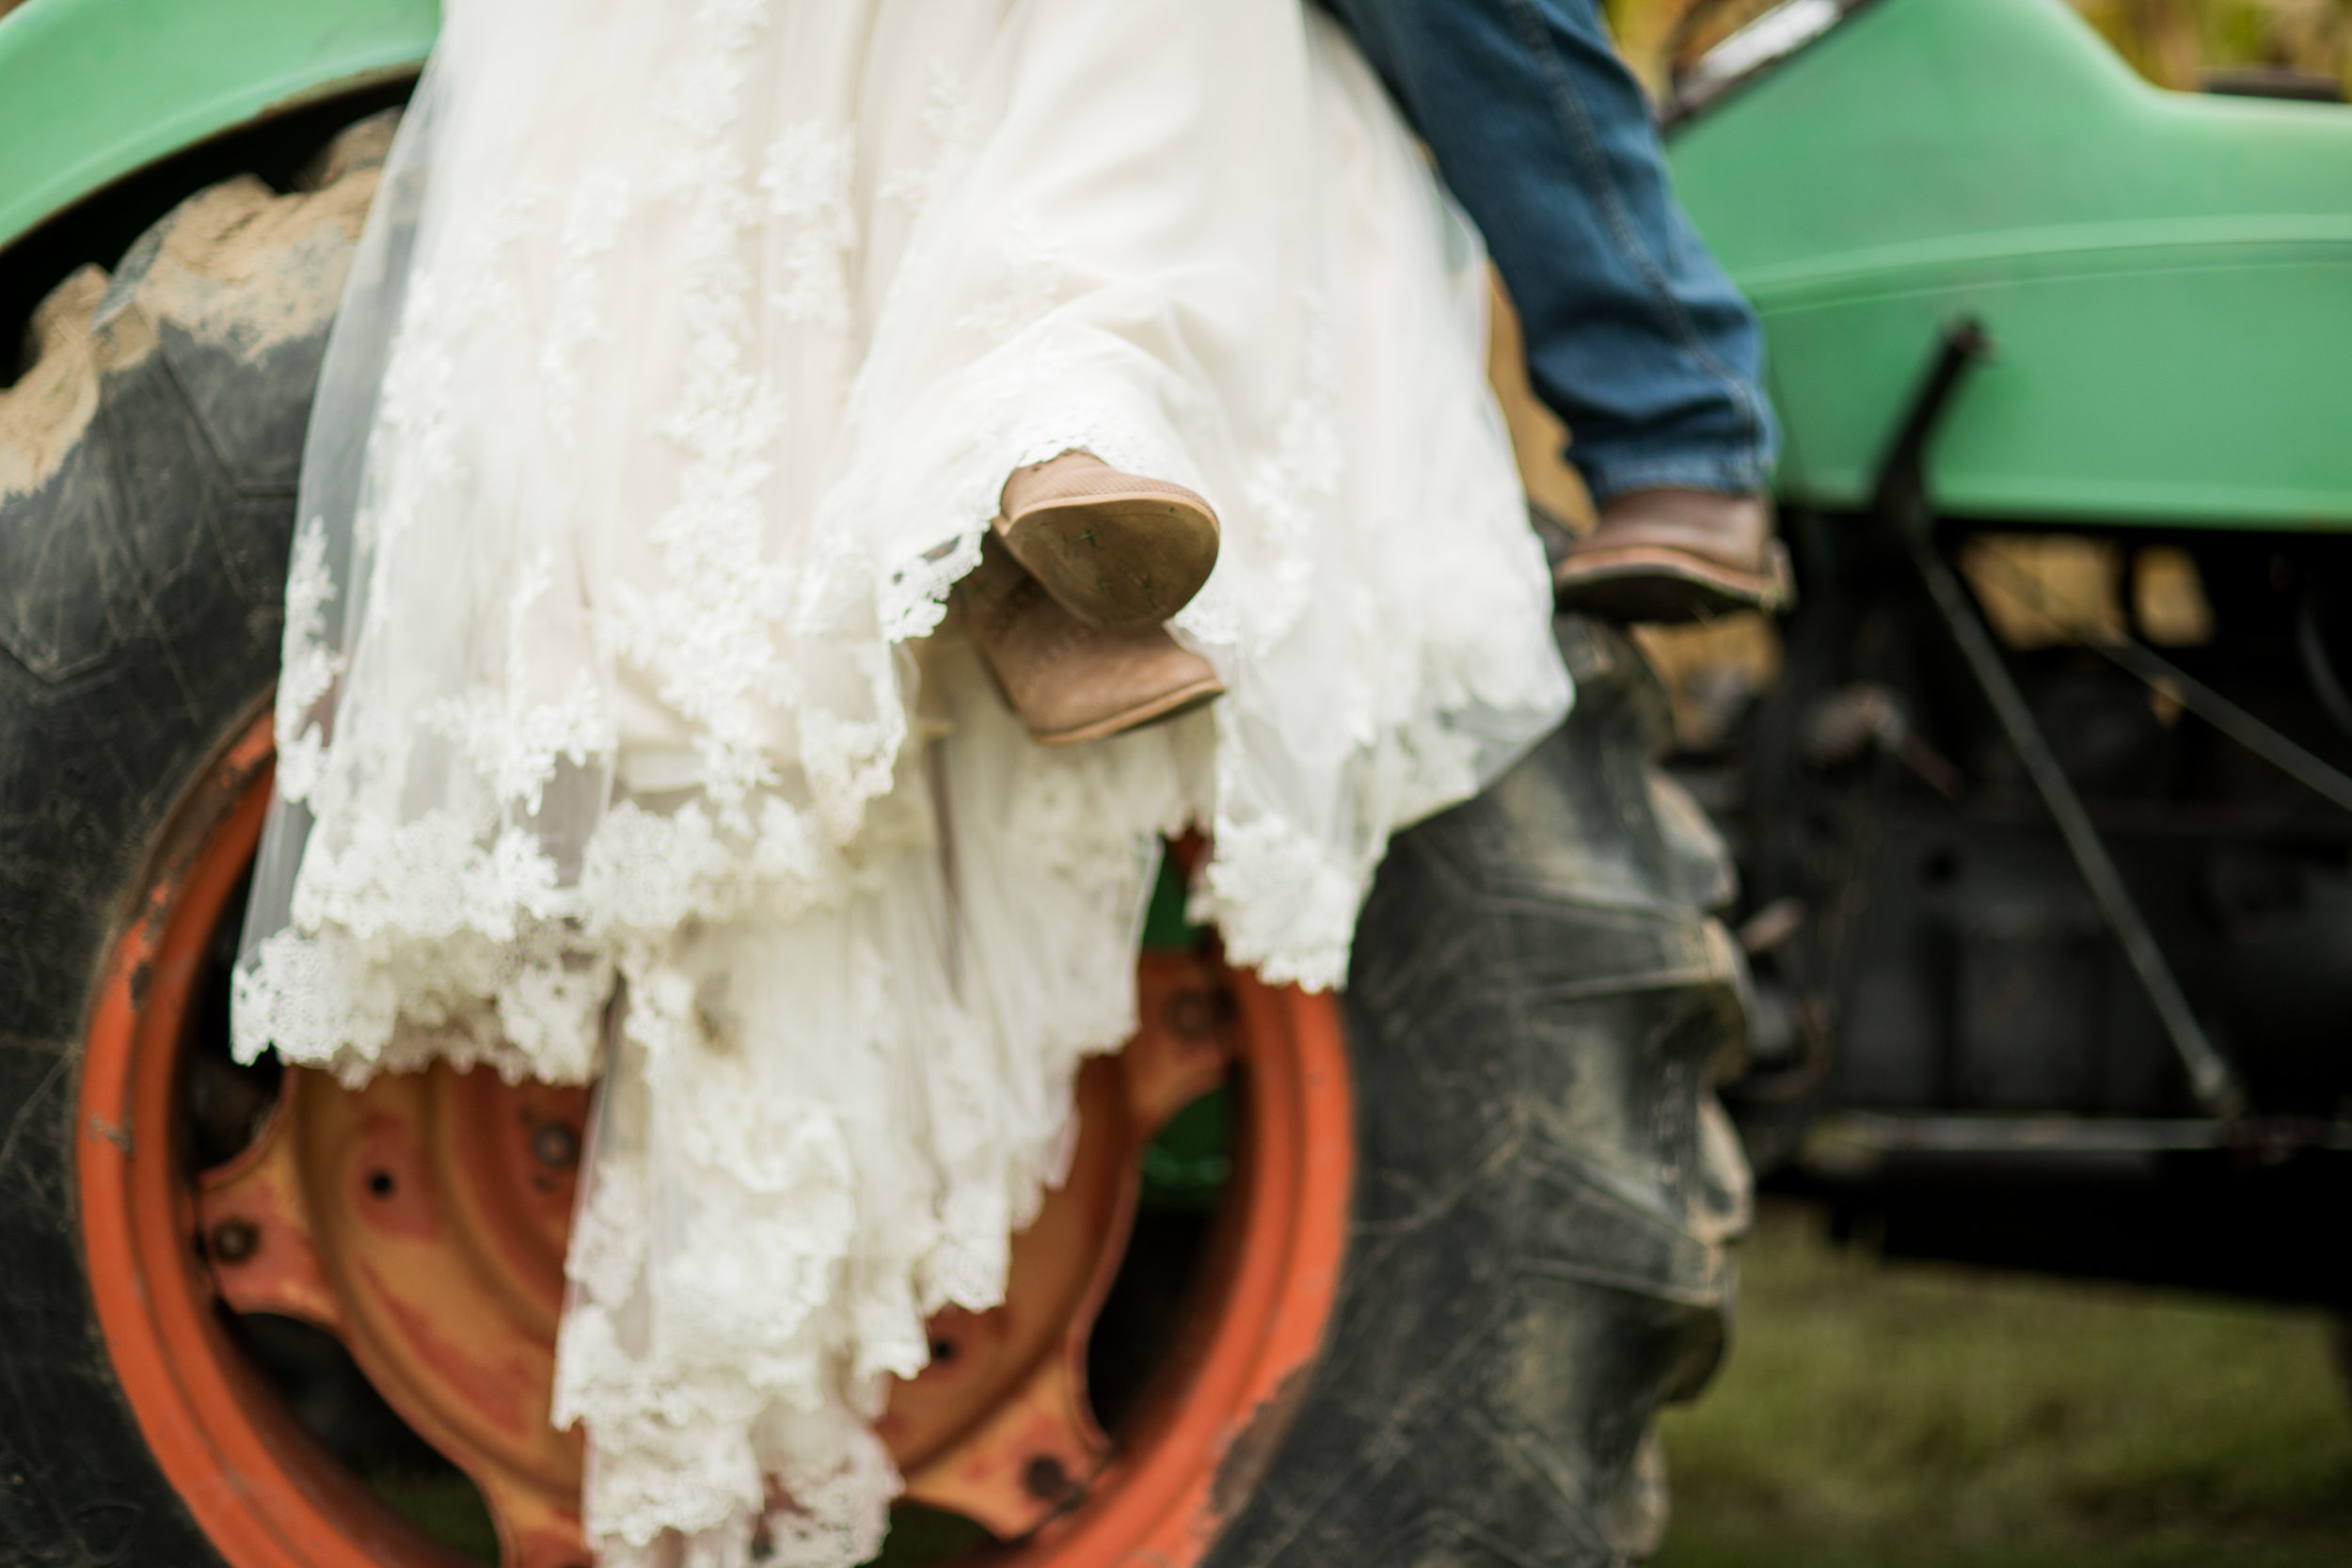 Bride and Groom on Tractor at Rustic Barn Wedding Venue